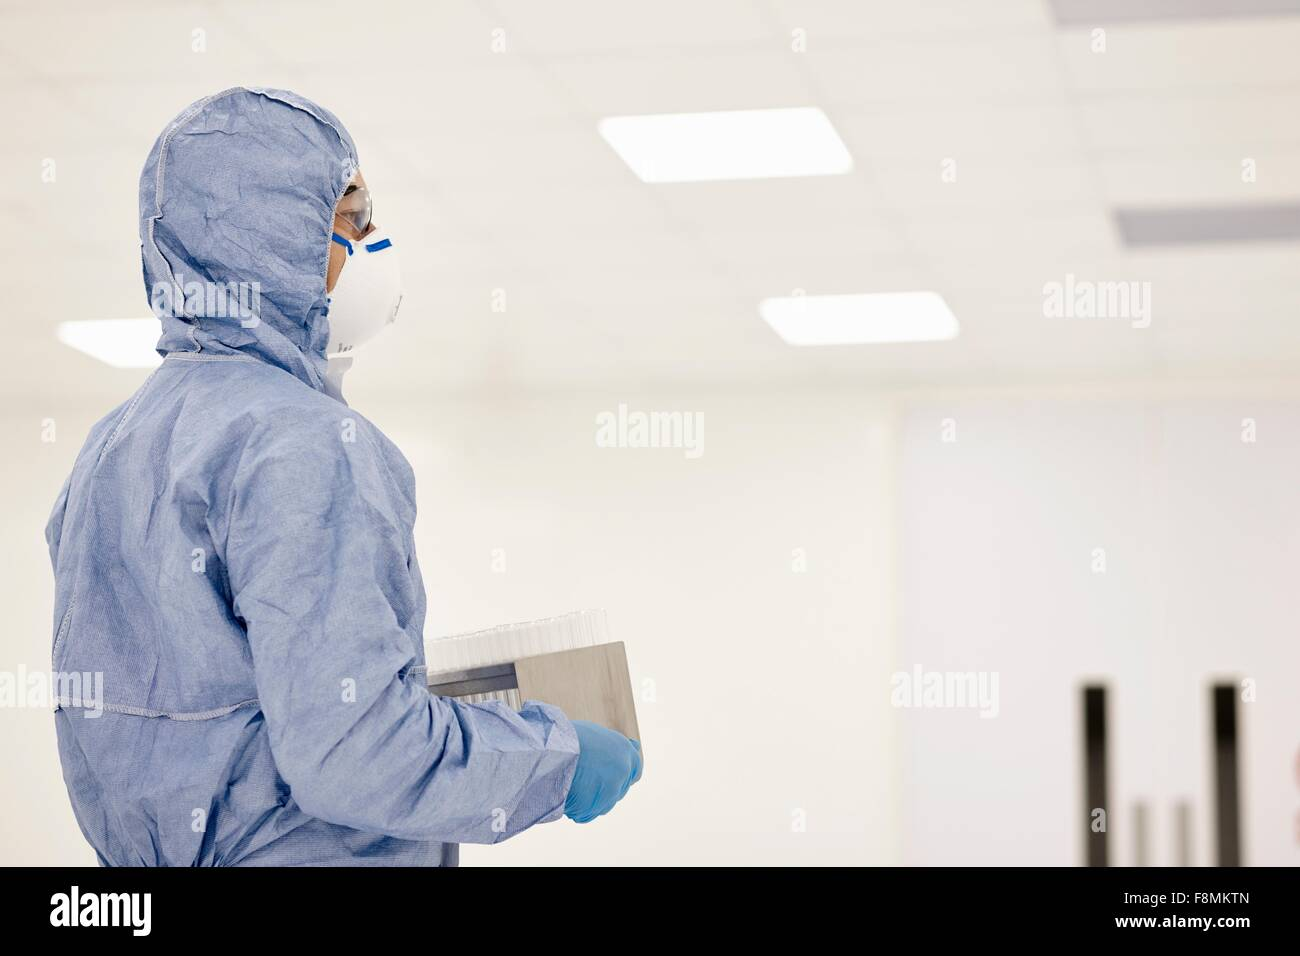 Scientist carrying tray of test tubes in laboratory Photo Stock